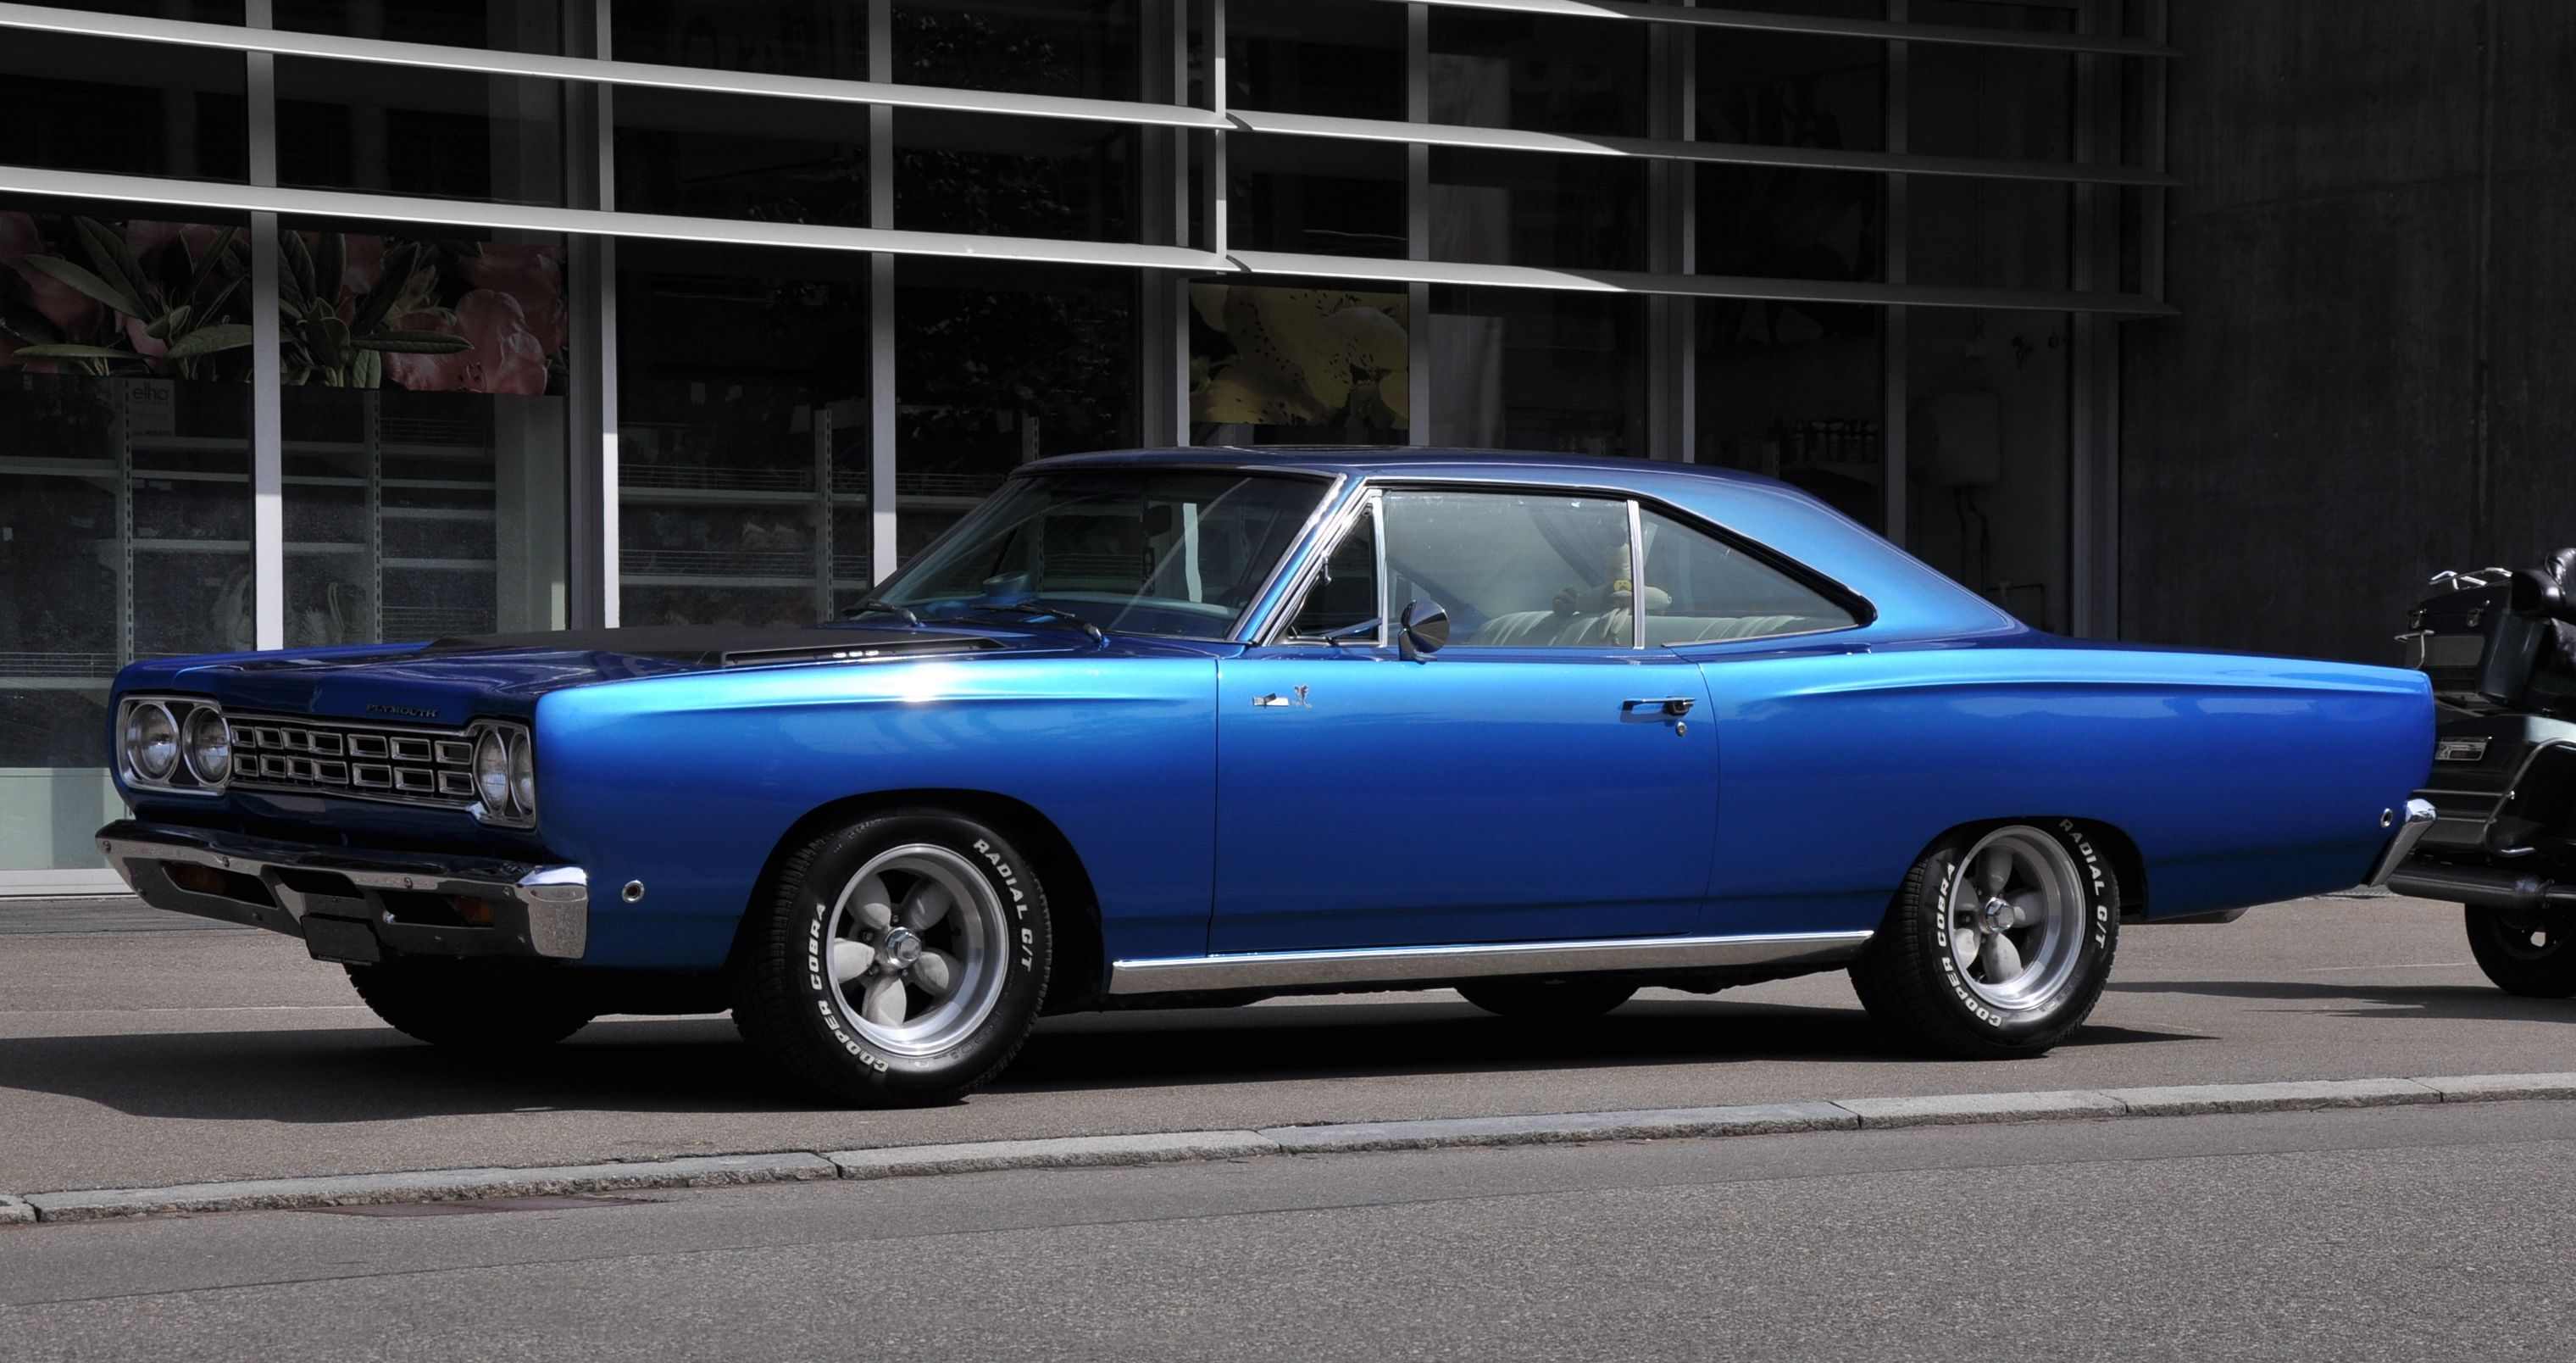 3040x1608 - Plymouth Road Runner Wallpapers 27